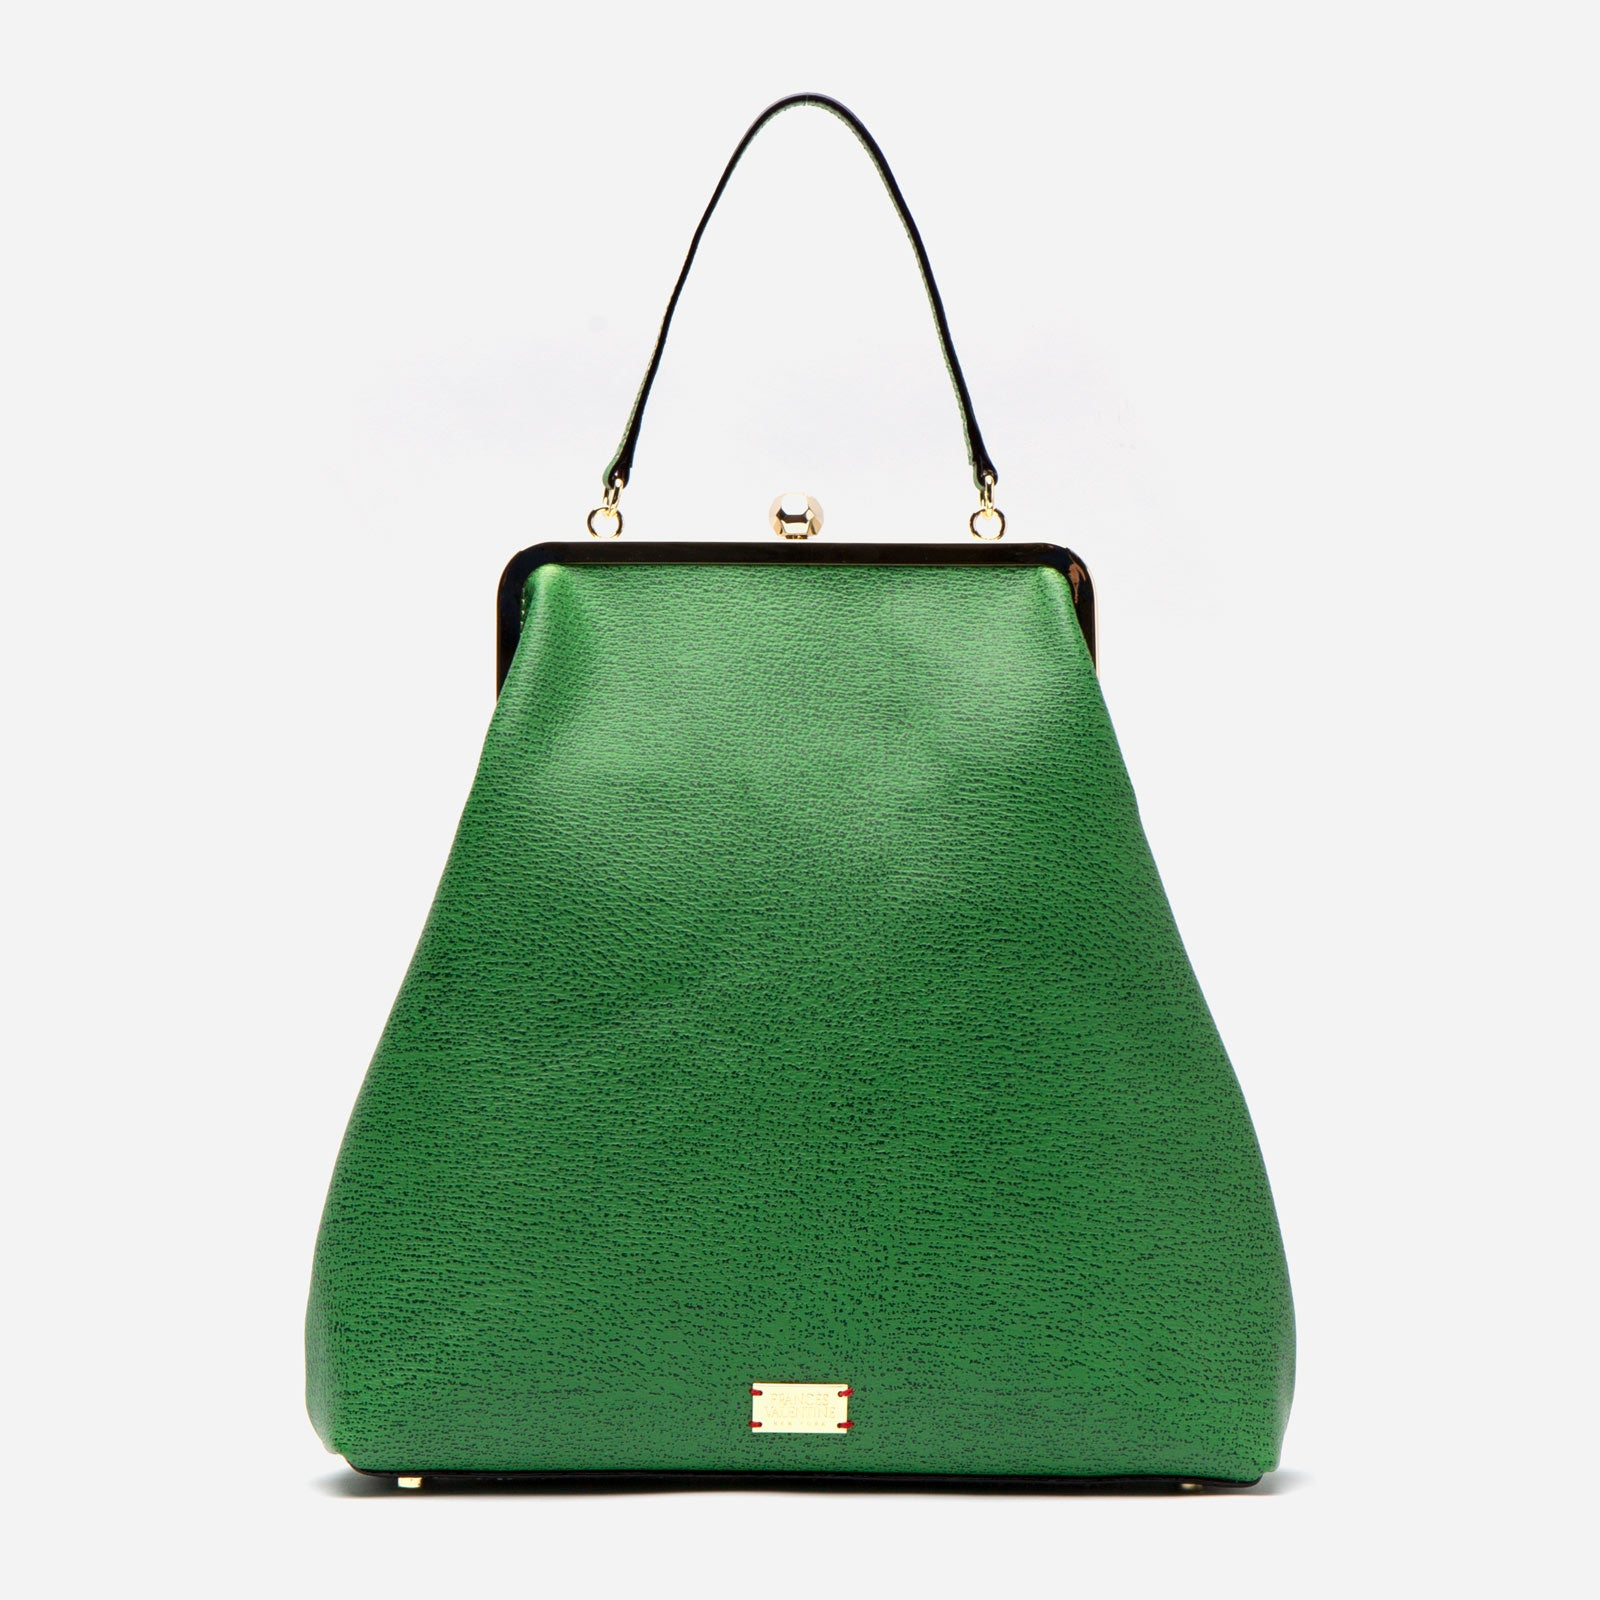 Caroline Frame Bag Boarskin Green - Frances Valentine